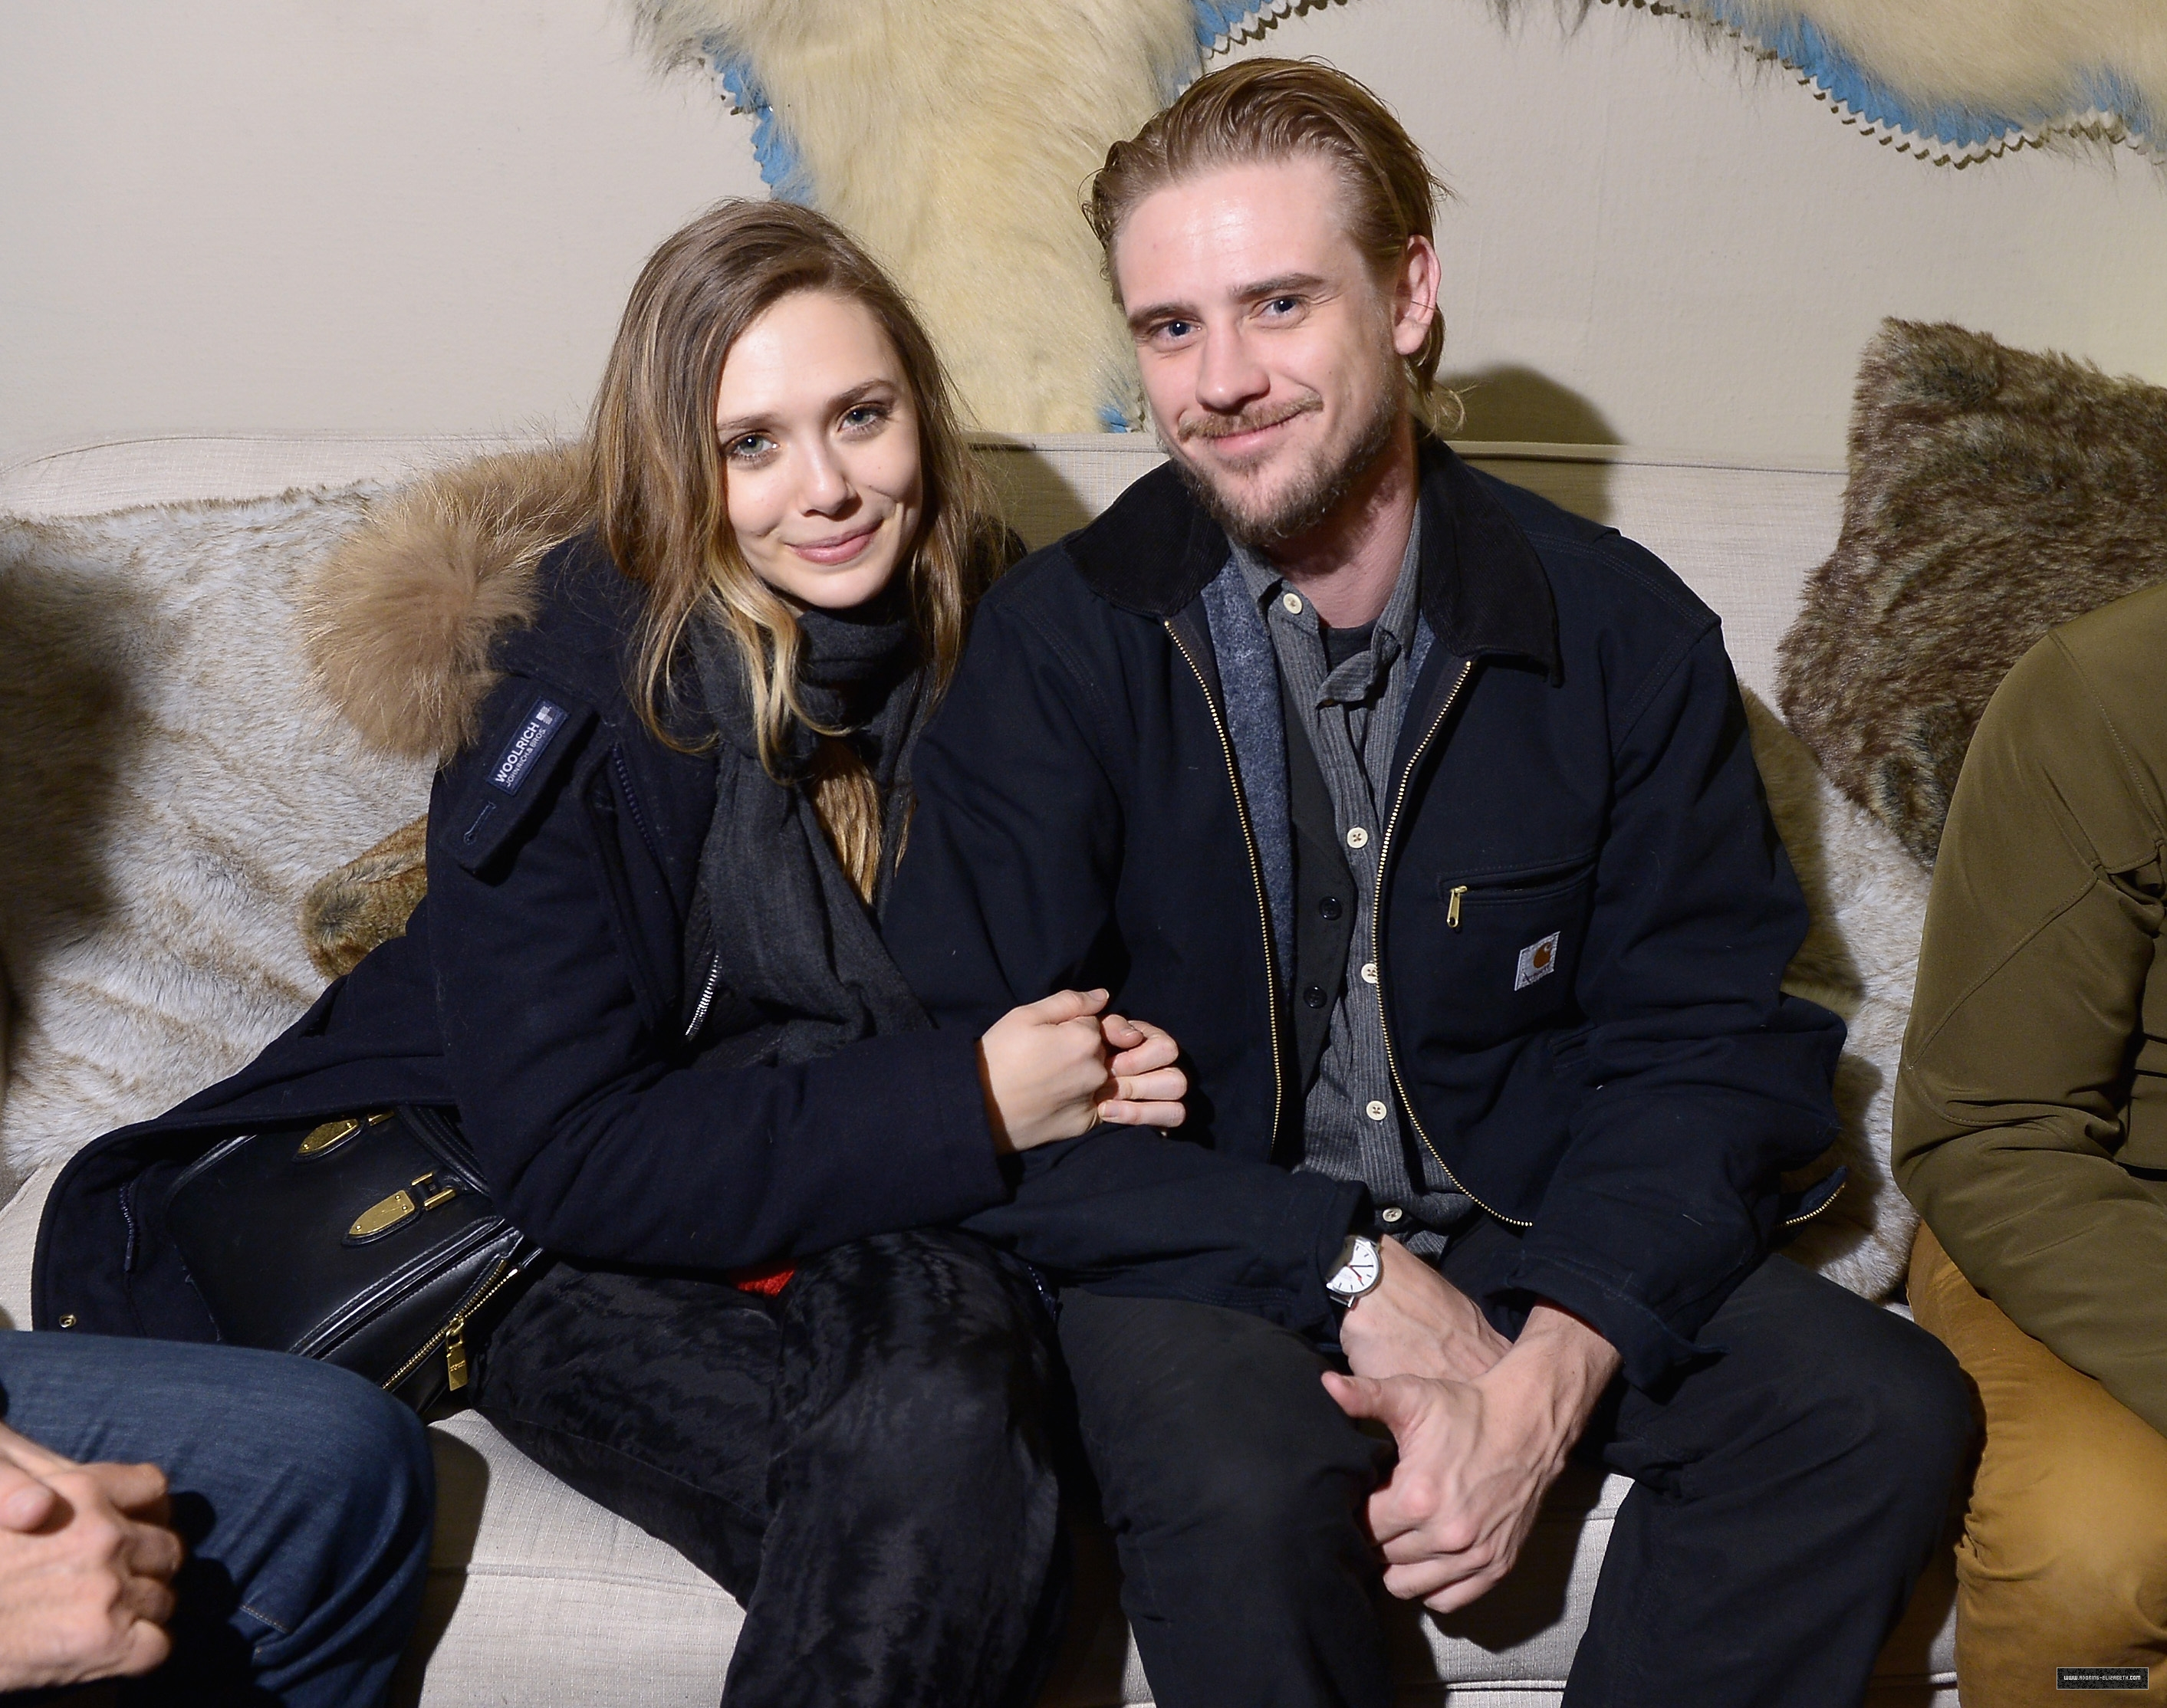 The Snow Lodge x Eveleigh 'Little Accidents' party (January 22, 2014)